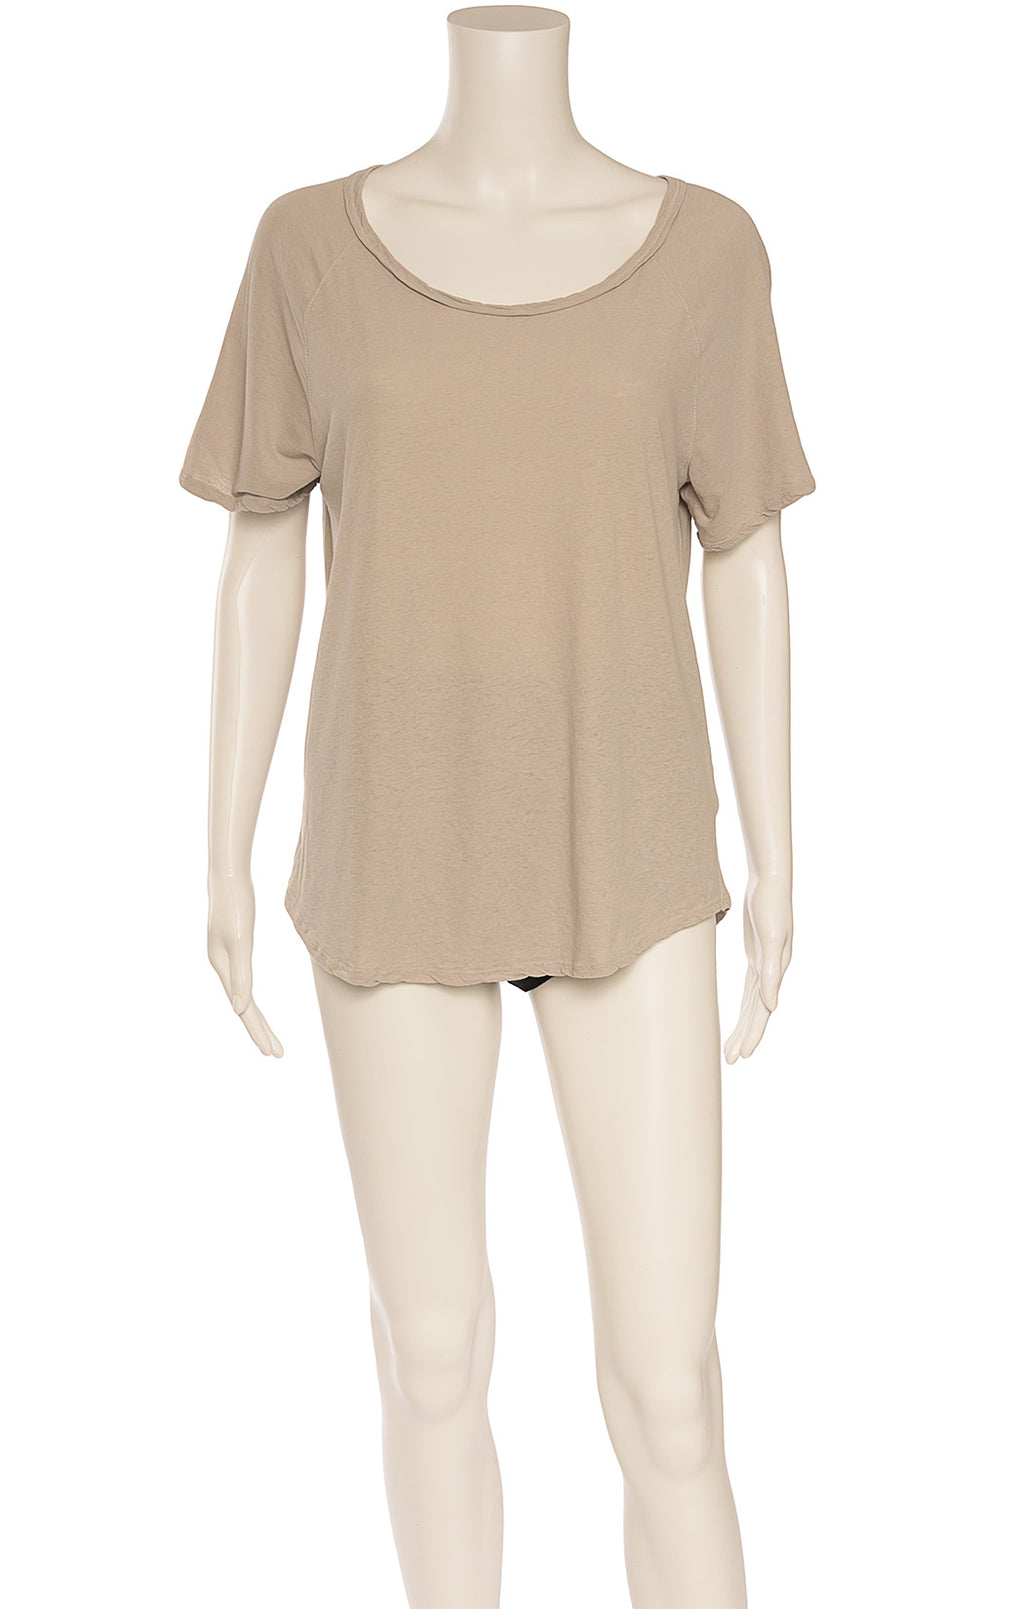 Front view of JAMES PERSE T Shirt Size: Medium